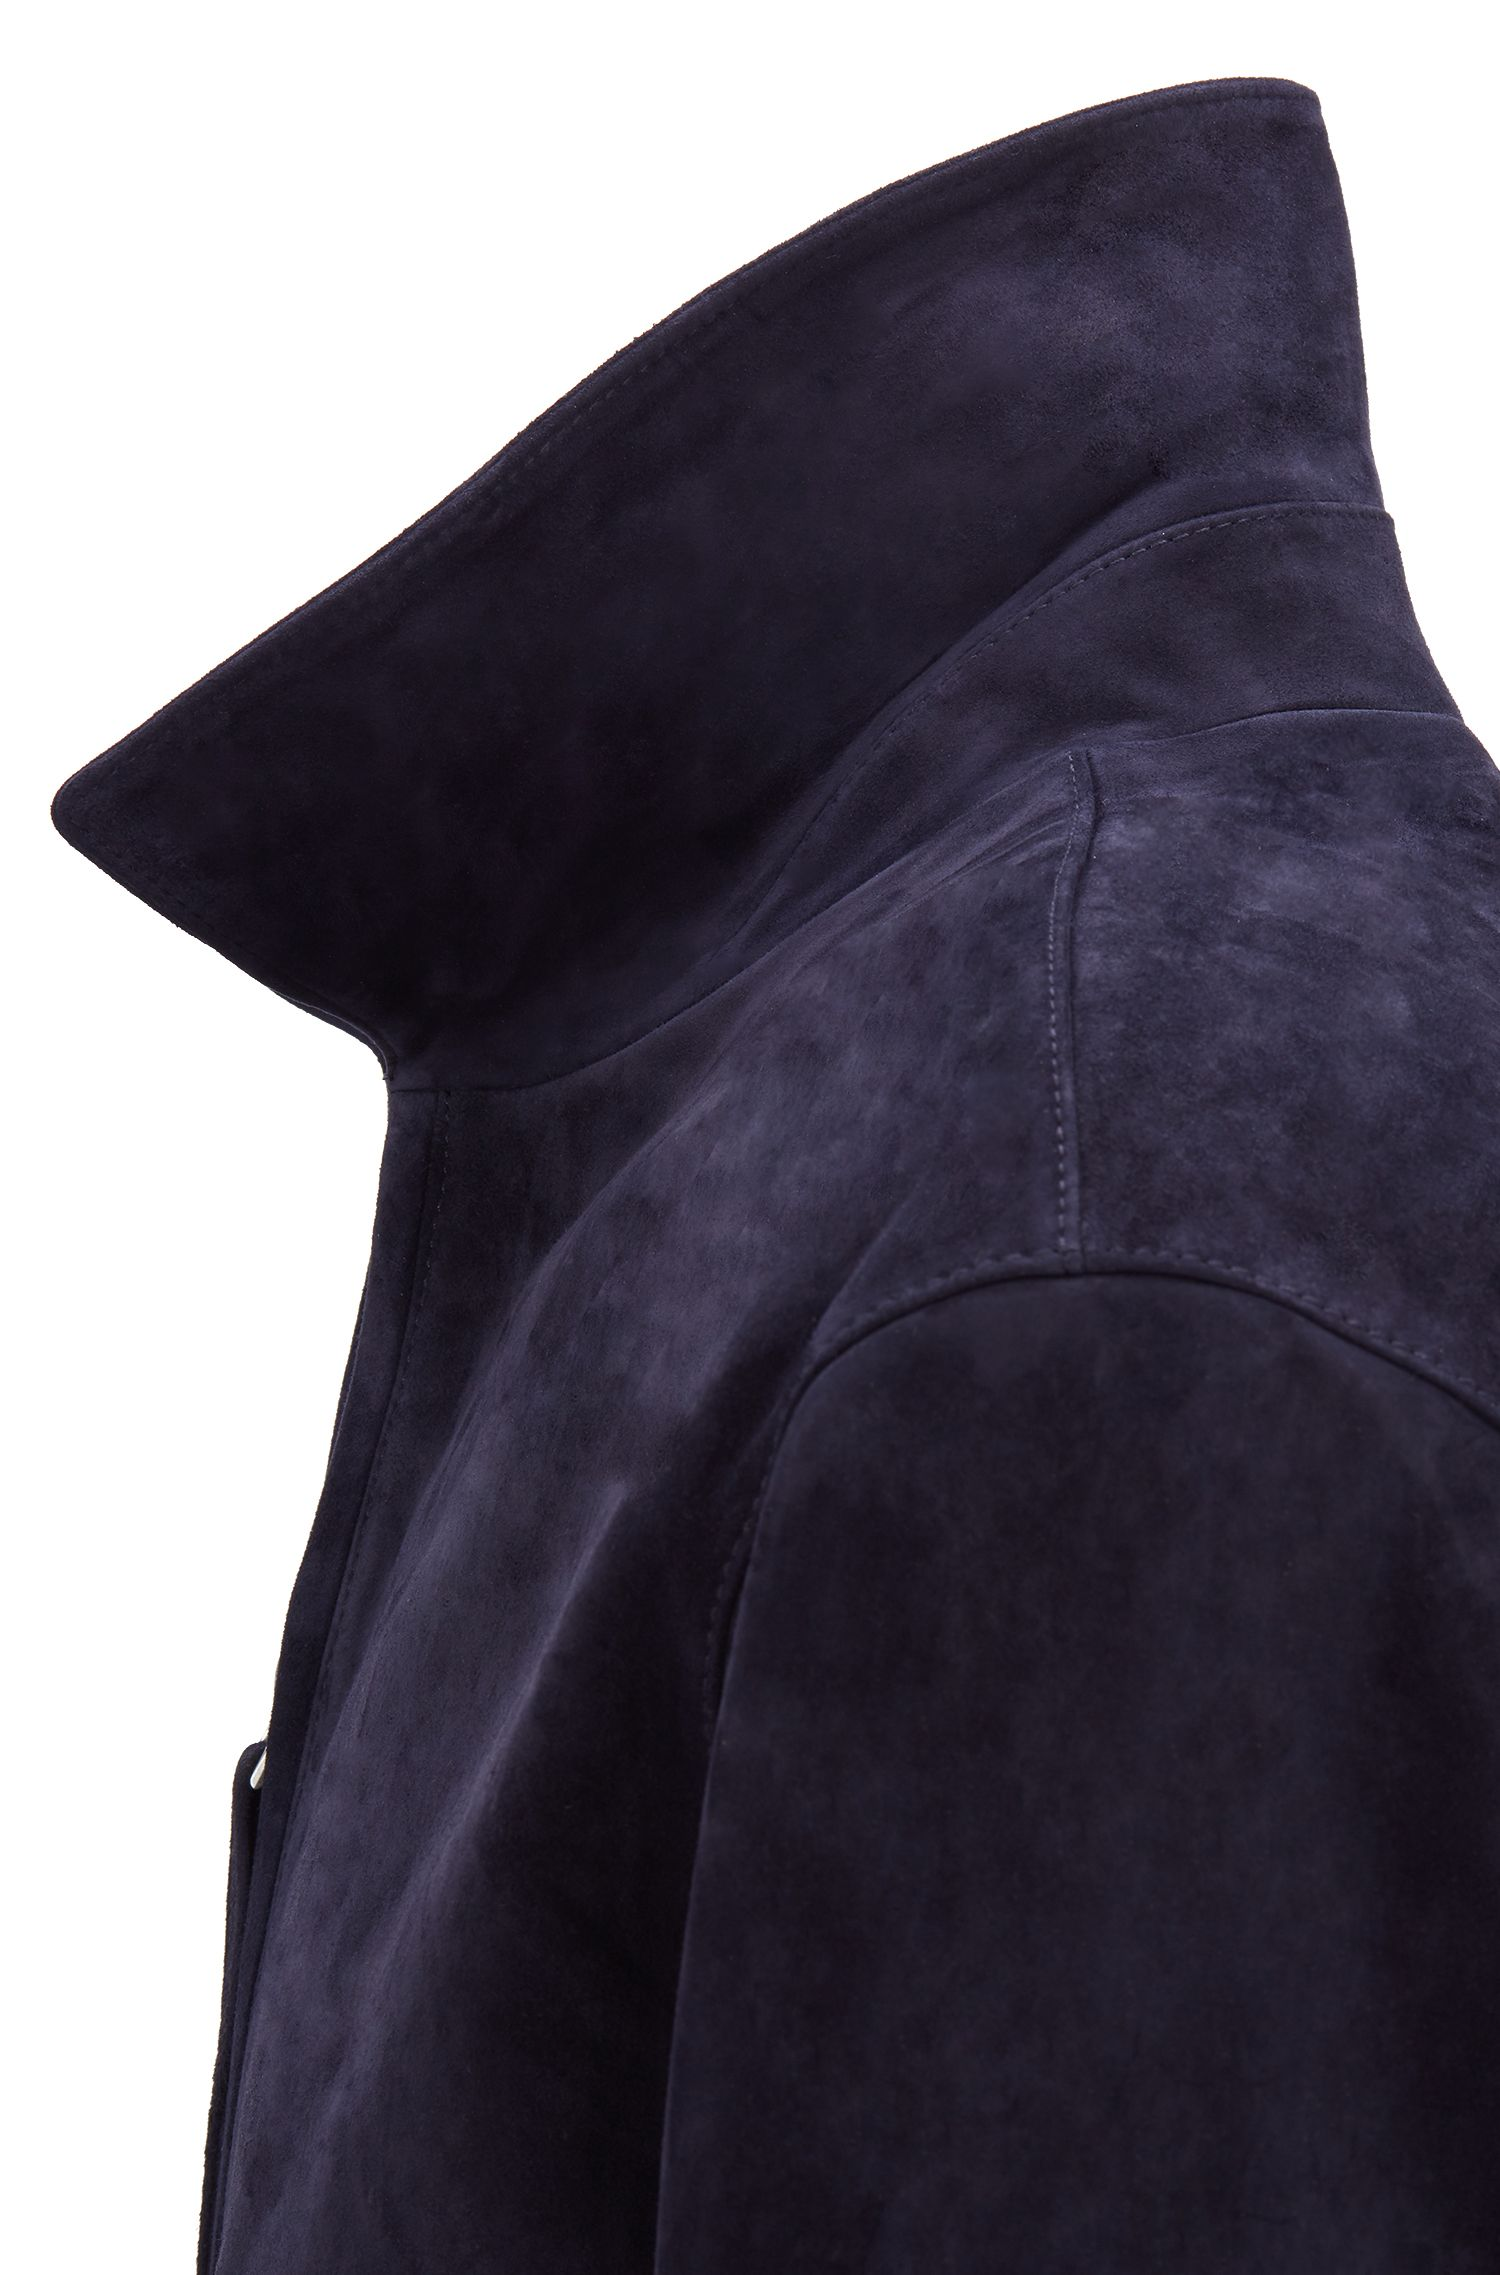 Fashion Show Harrington jacket in soft-touch suede, Dark Blue